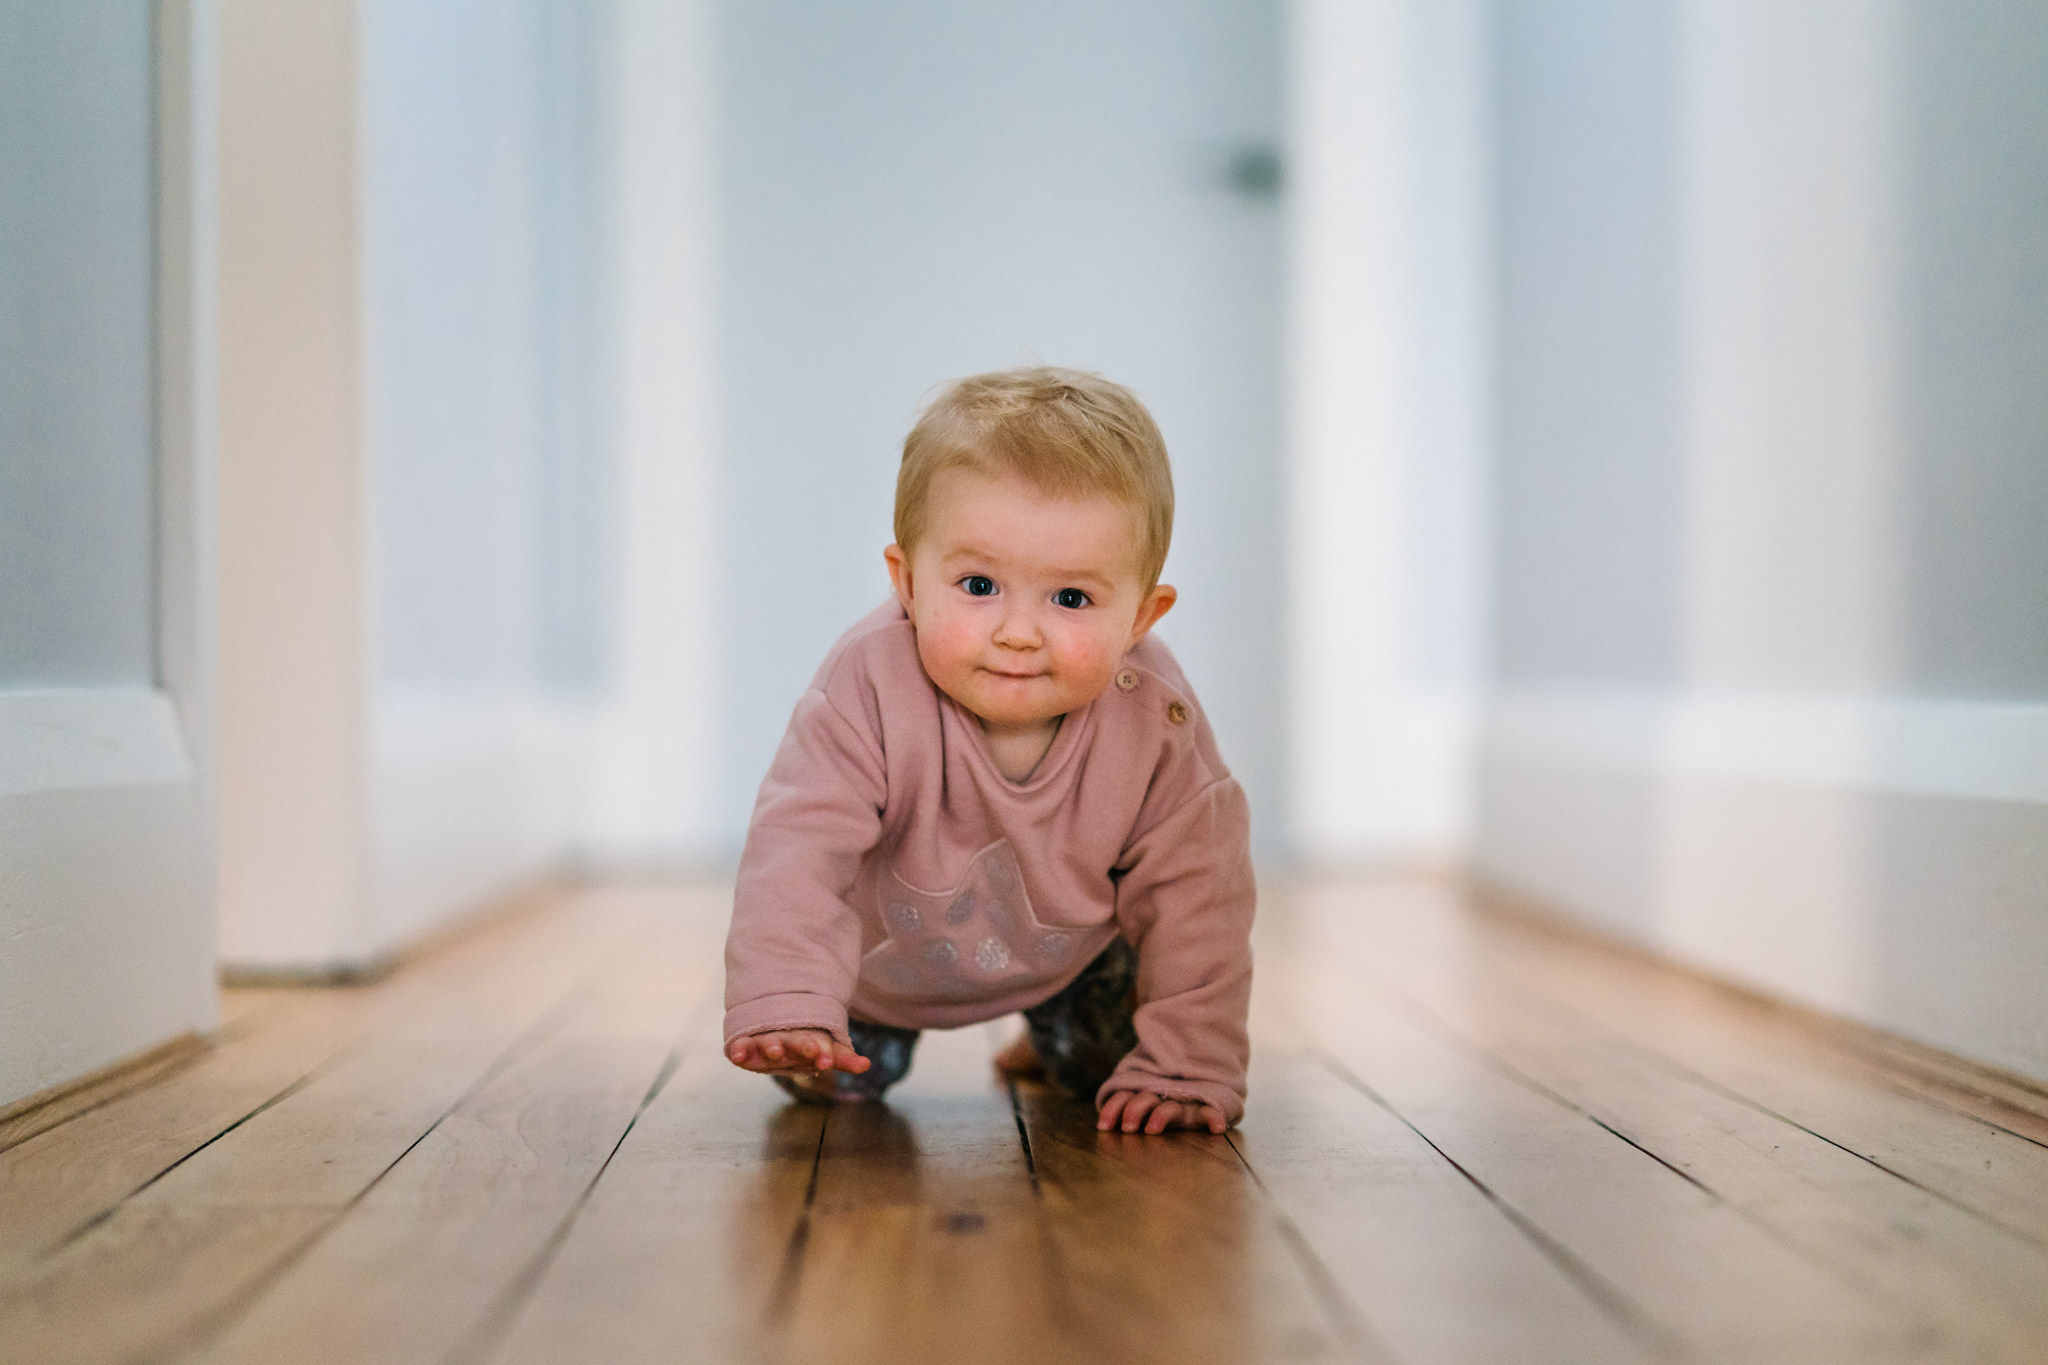 Baby crawling down hallway with cute look on her face